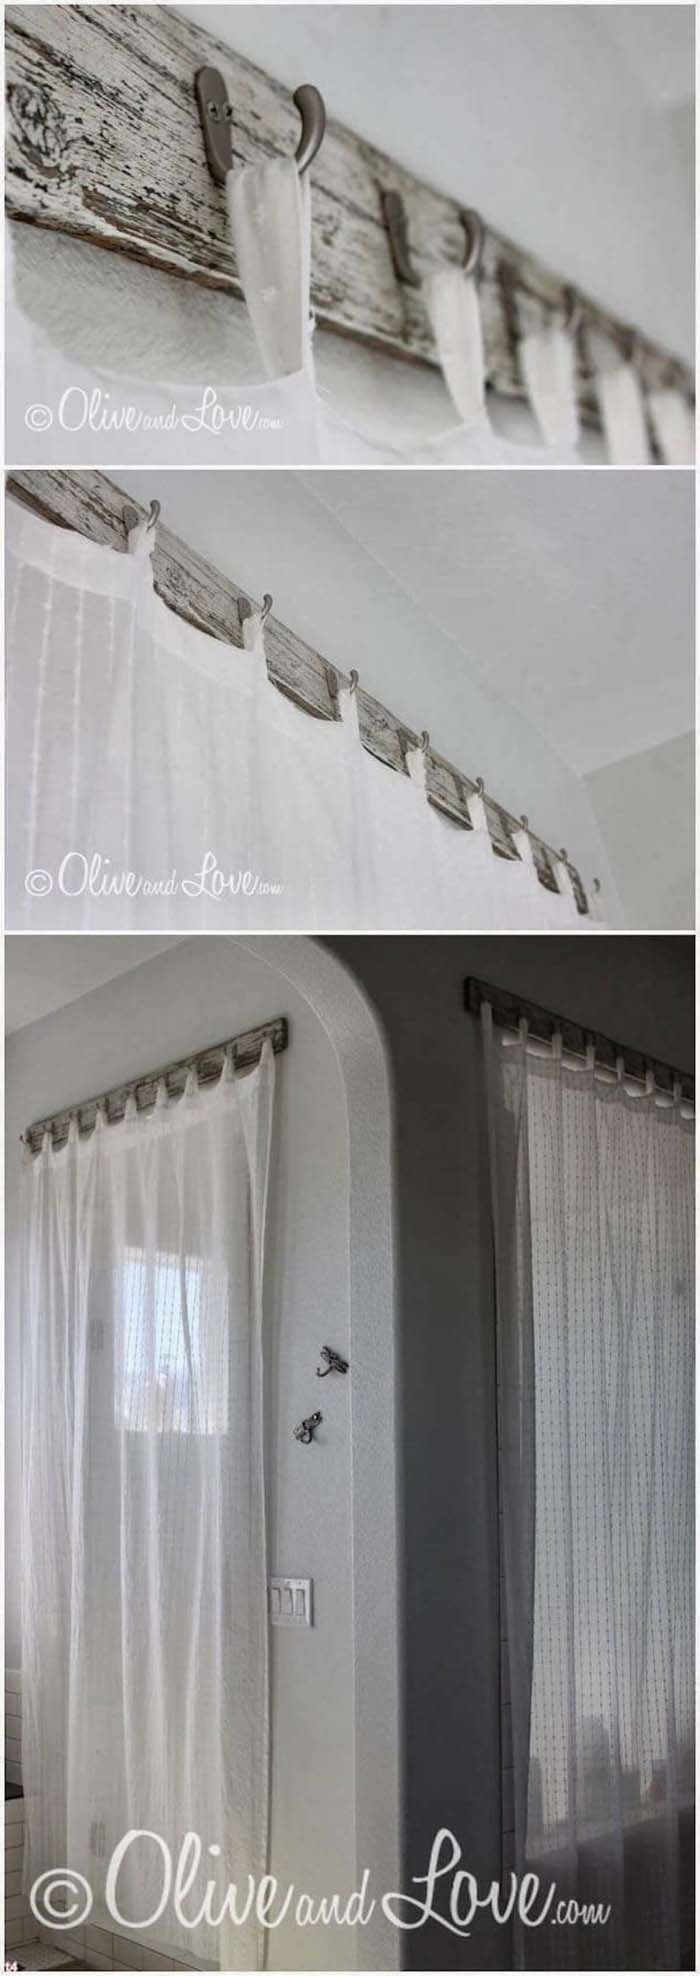 Sheers Hung from Old Fashioned Hooks #farmhouse #windowtreatments #decorhomeideas